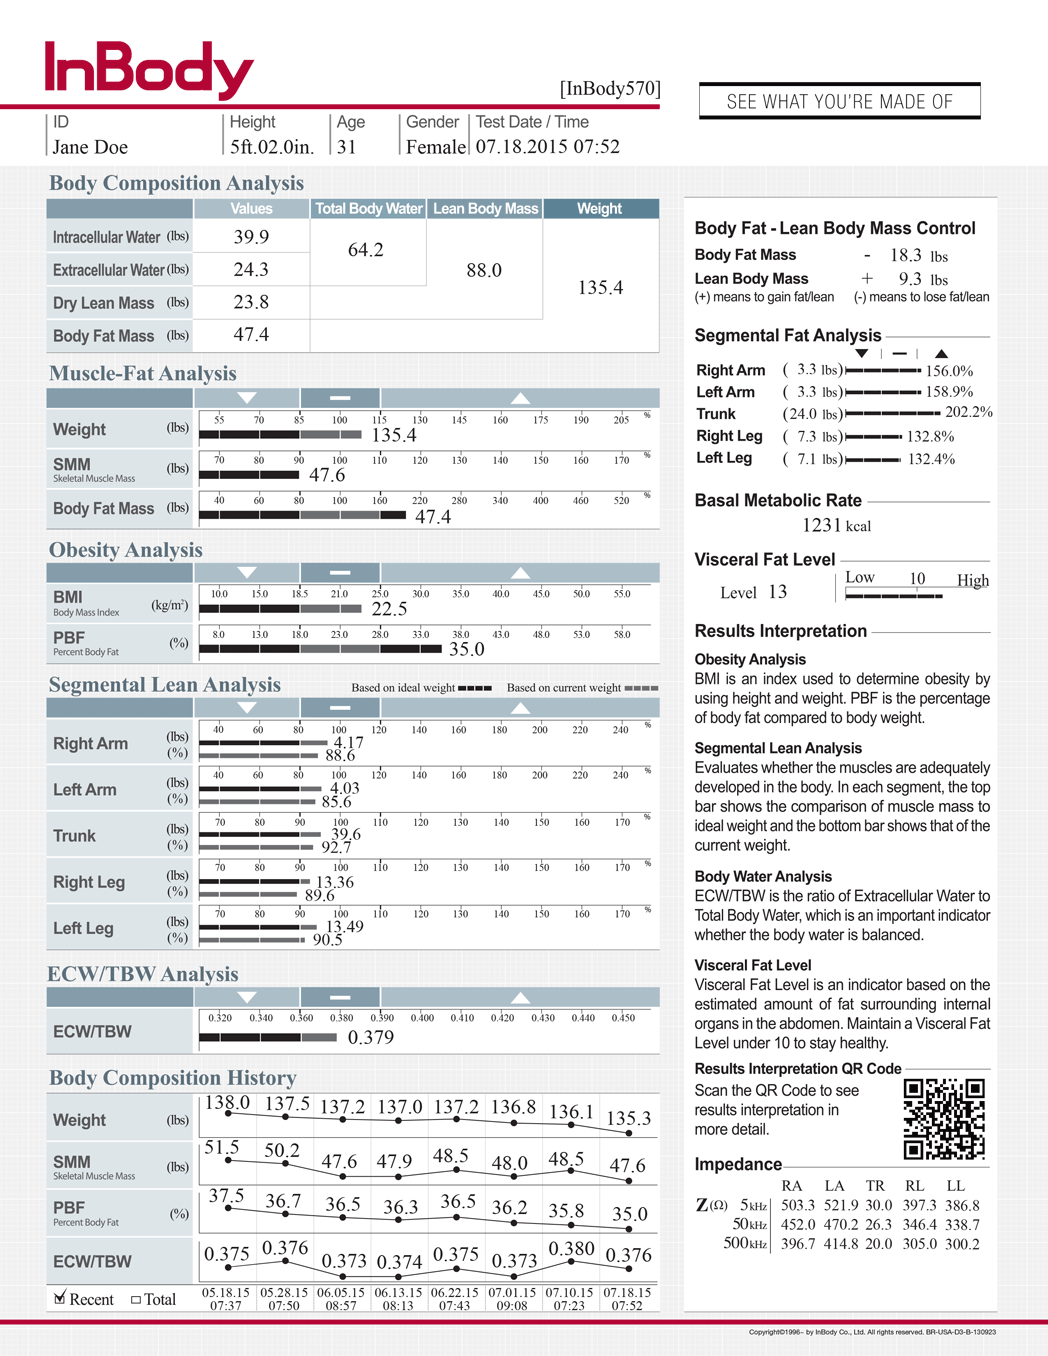 InBody Results Sheet.png